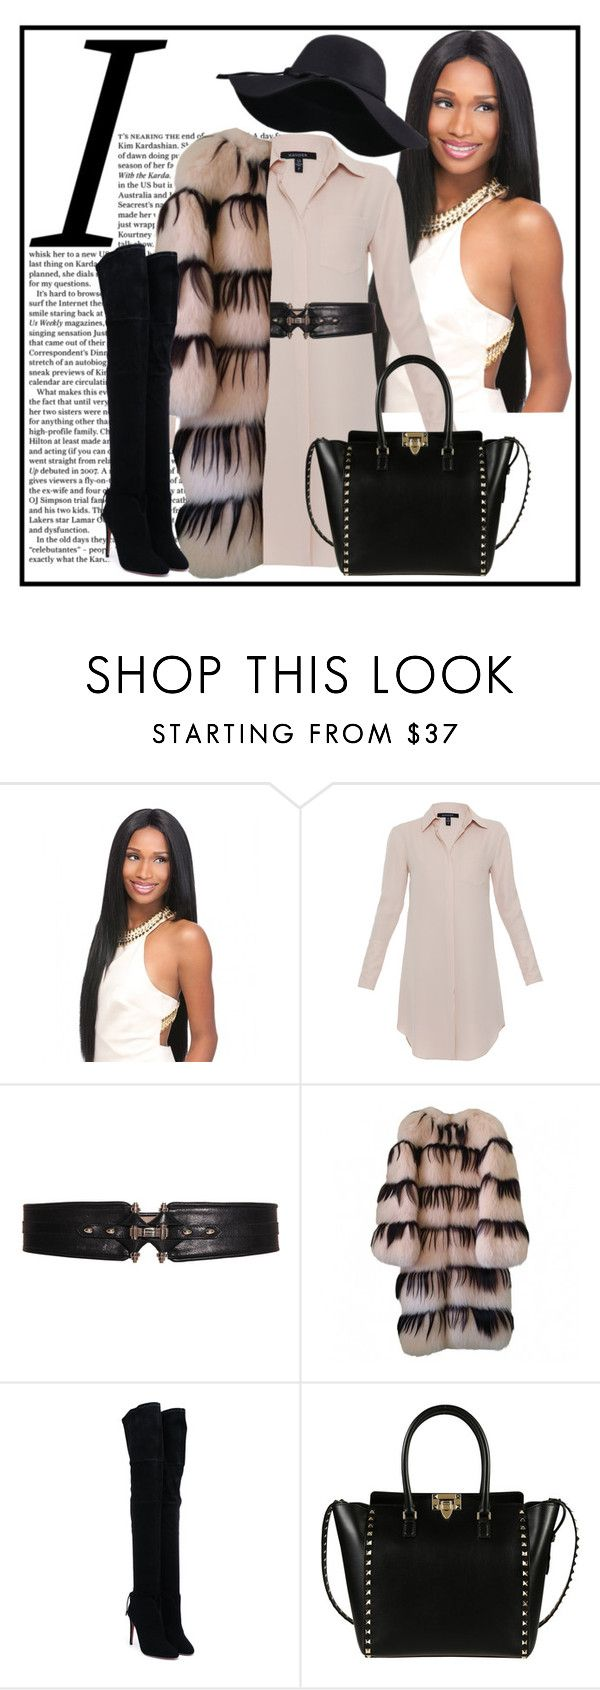 """Out and about Chi Town"" by peekaboo ❤ liked on Polyvore featuring Xander, Givenchy, Missoni, Aquazzura and Valentino"